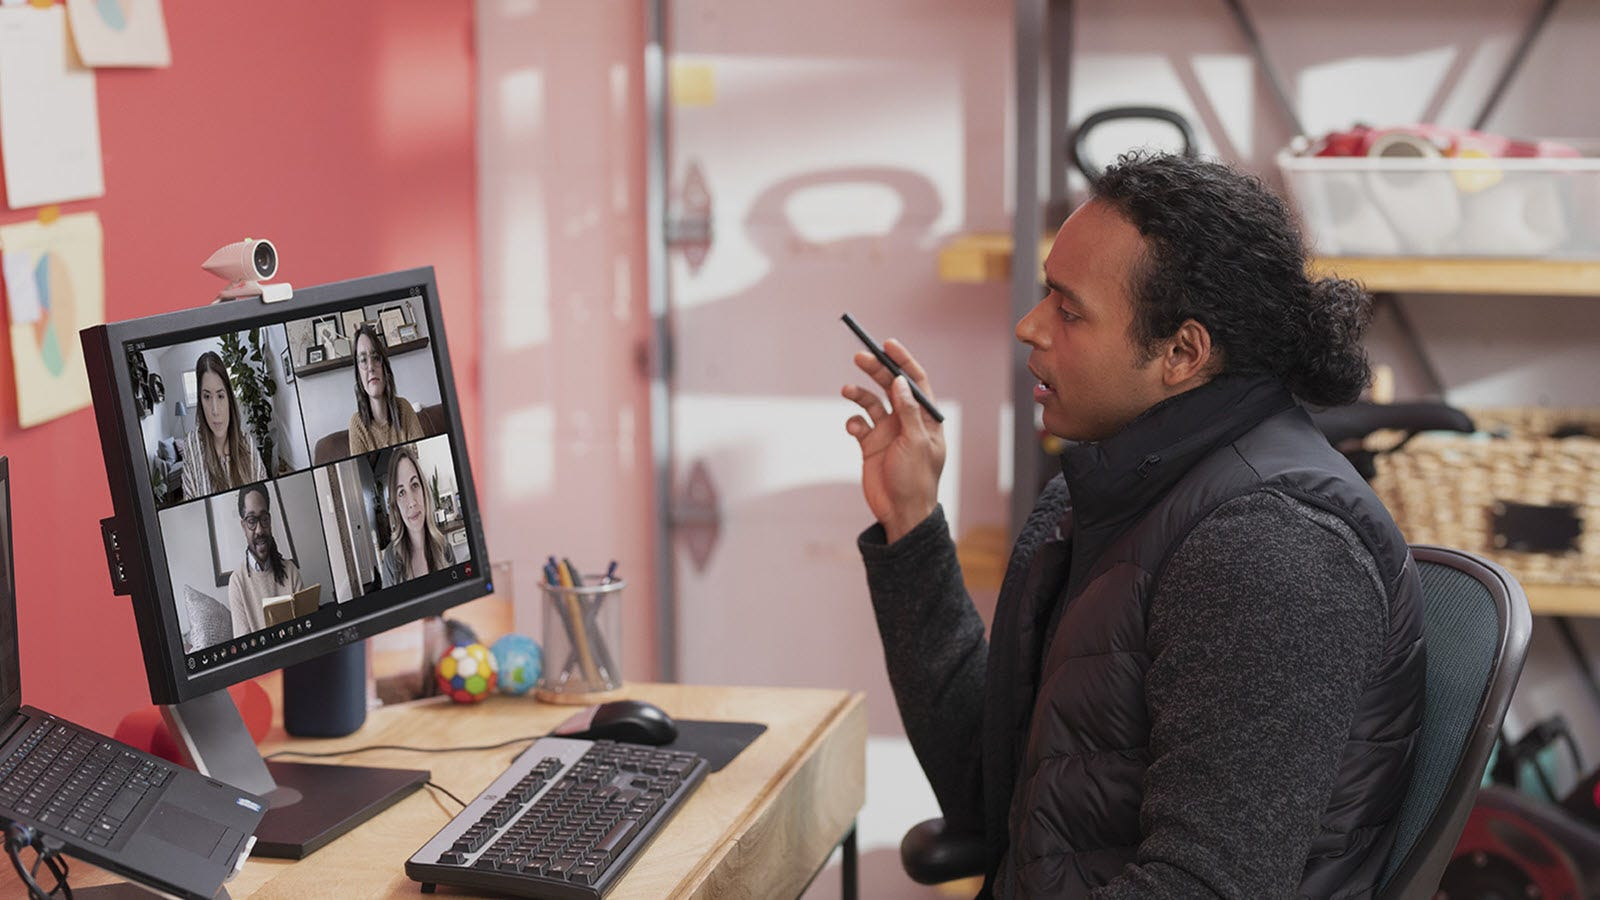 A man on a video call using a small white webcam.